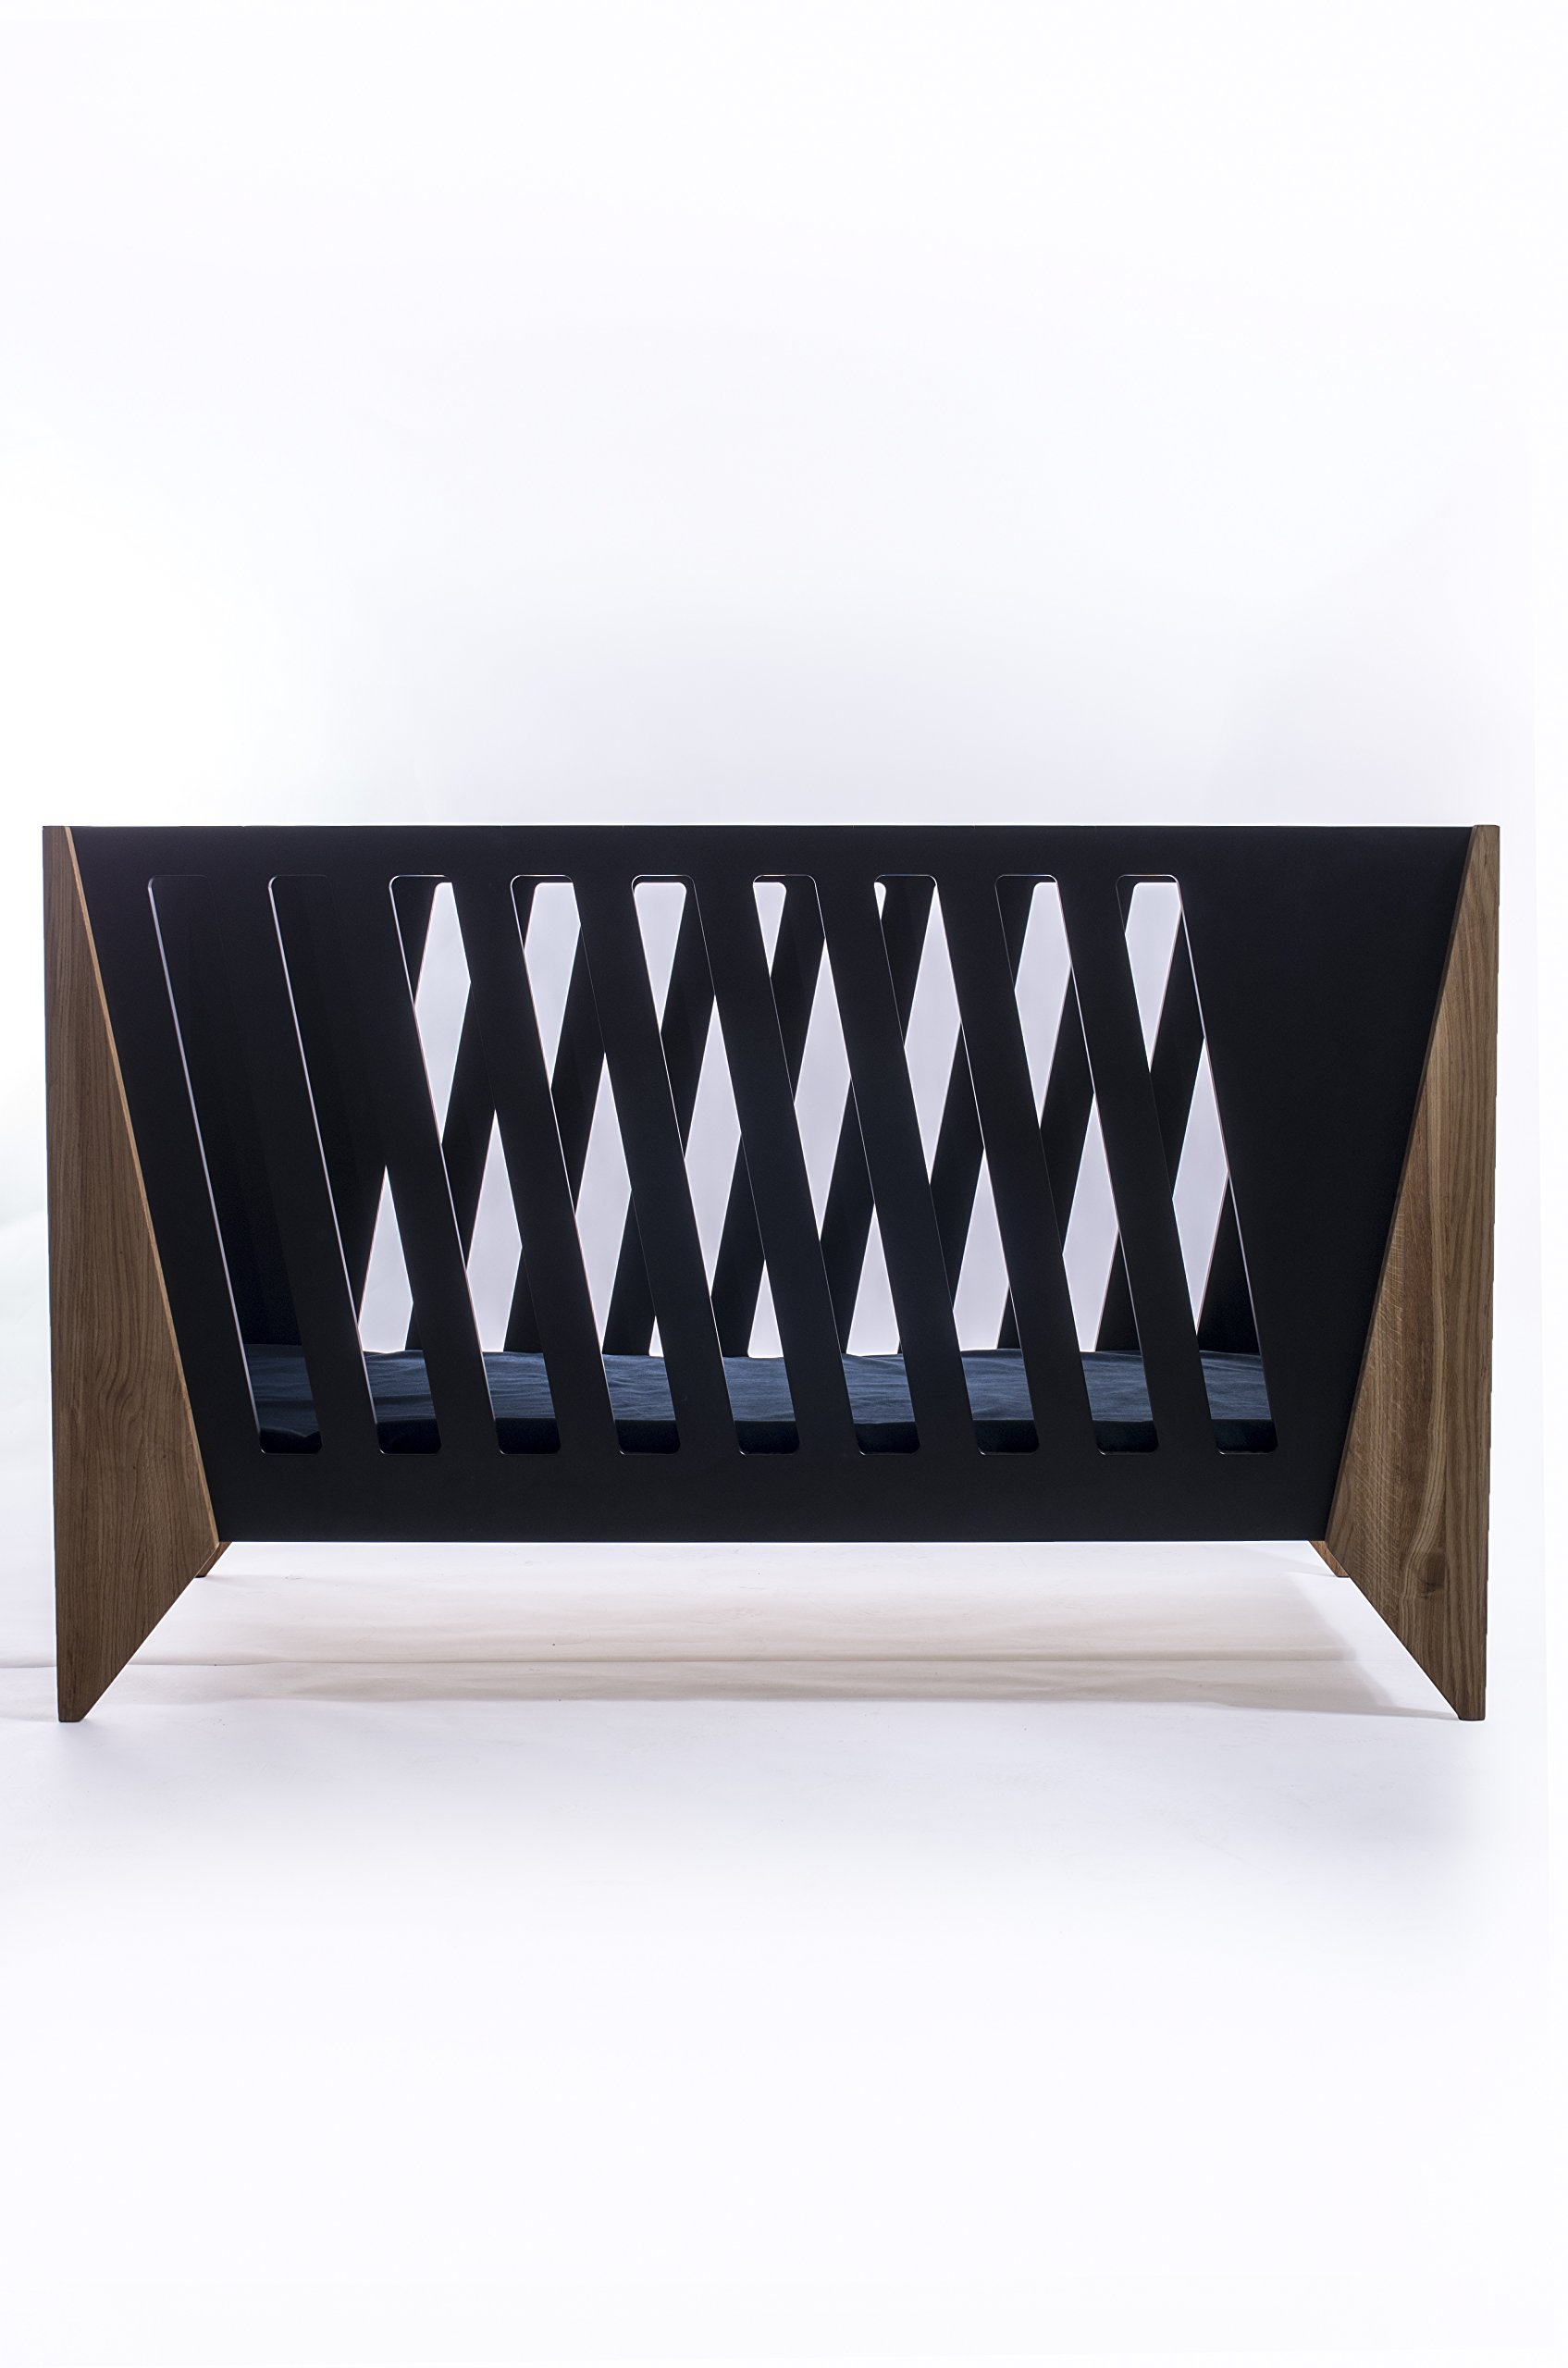 Nursery Cot (Black)  Made from high quality materials Mattress included Unique Scandinavian design 6